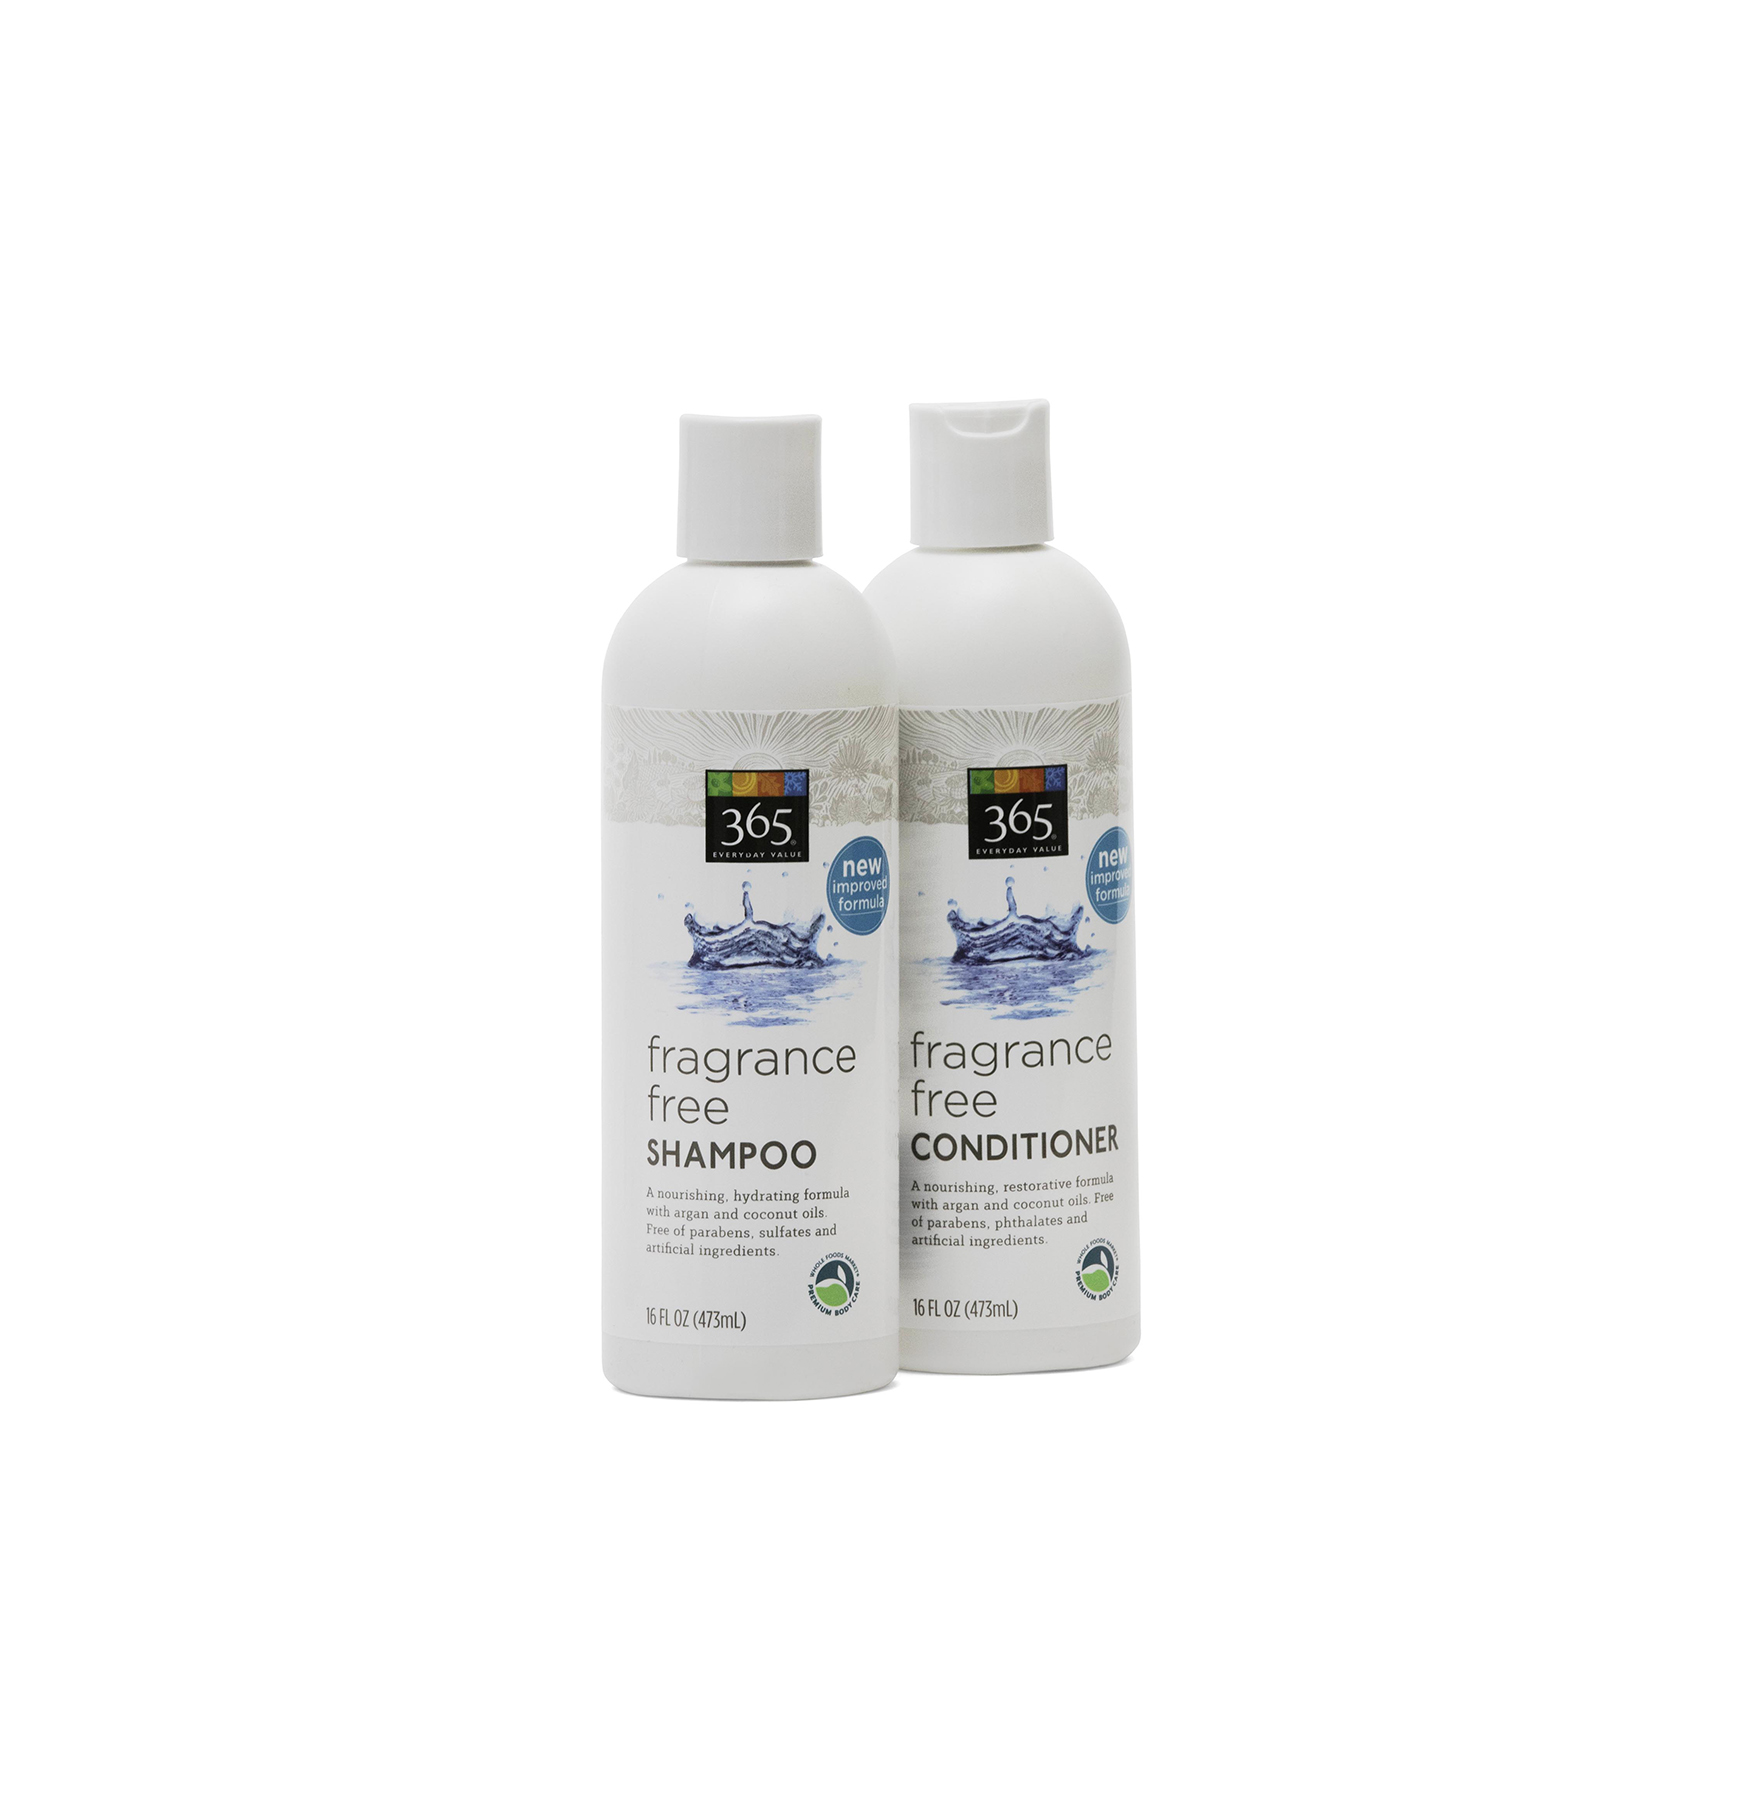 Whole Foods 365 Fragrance-Free Shampoo and Conditioner